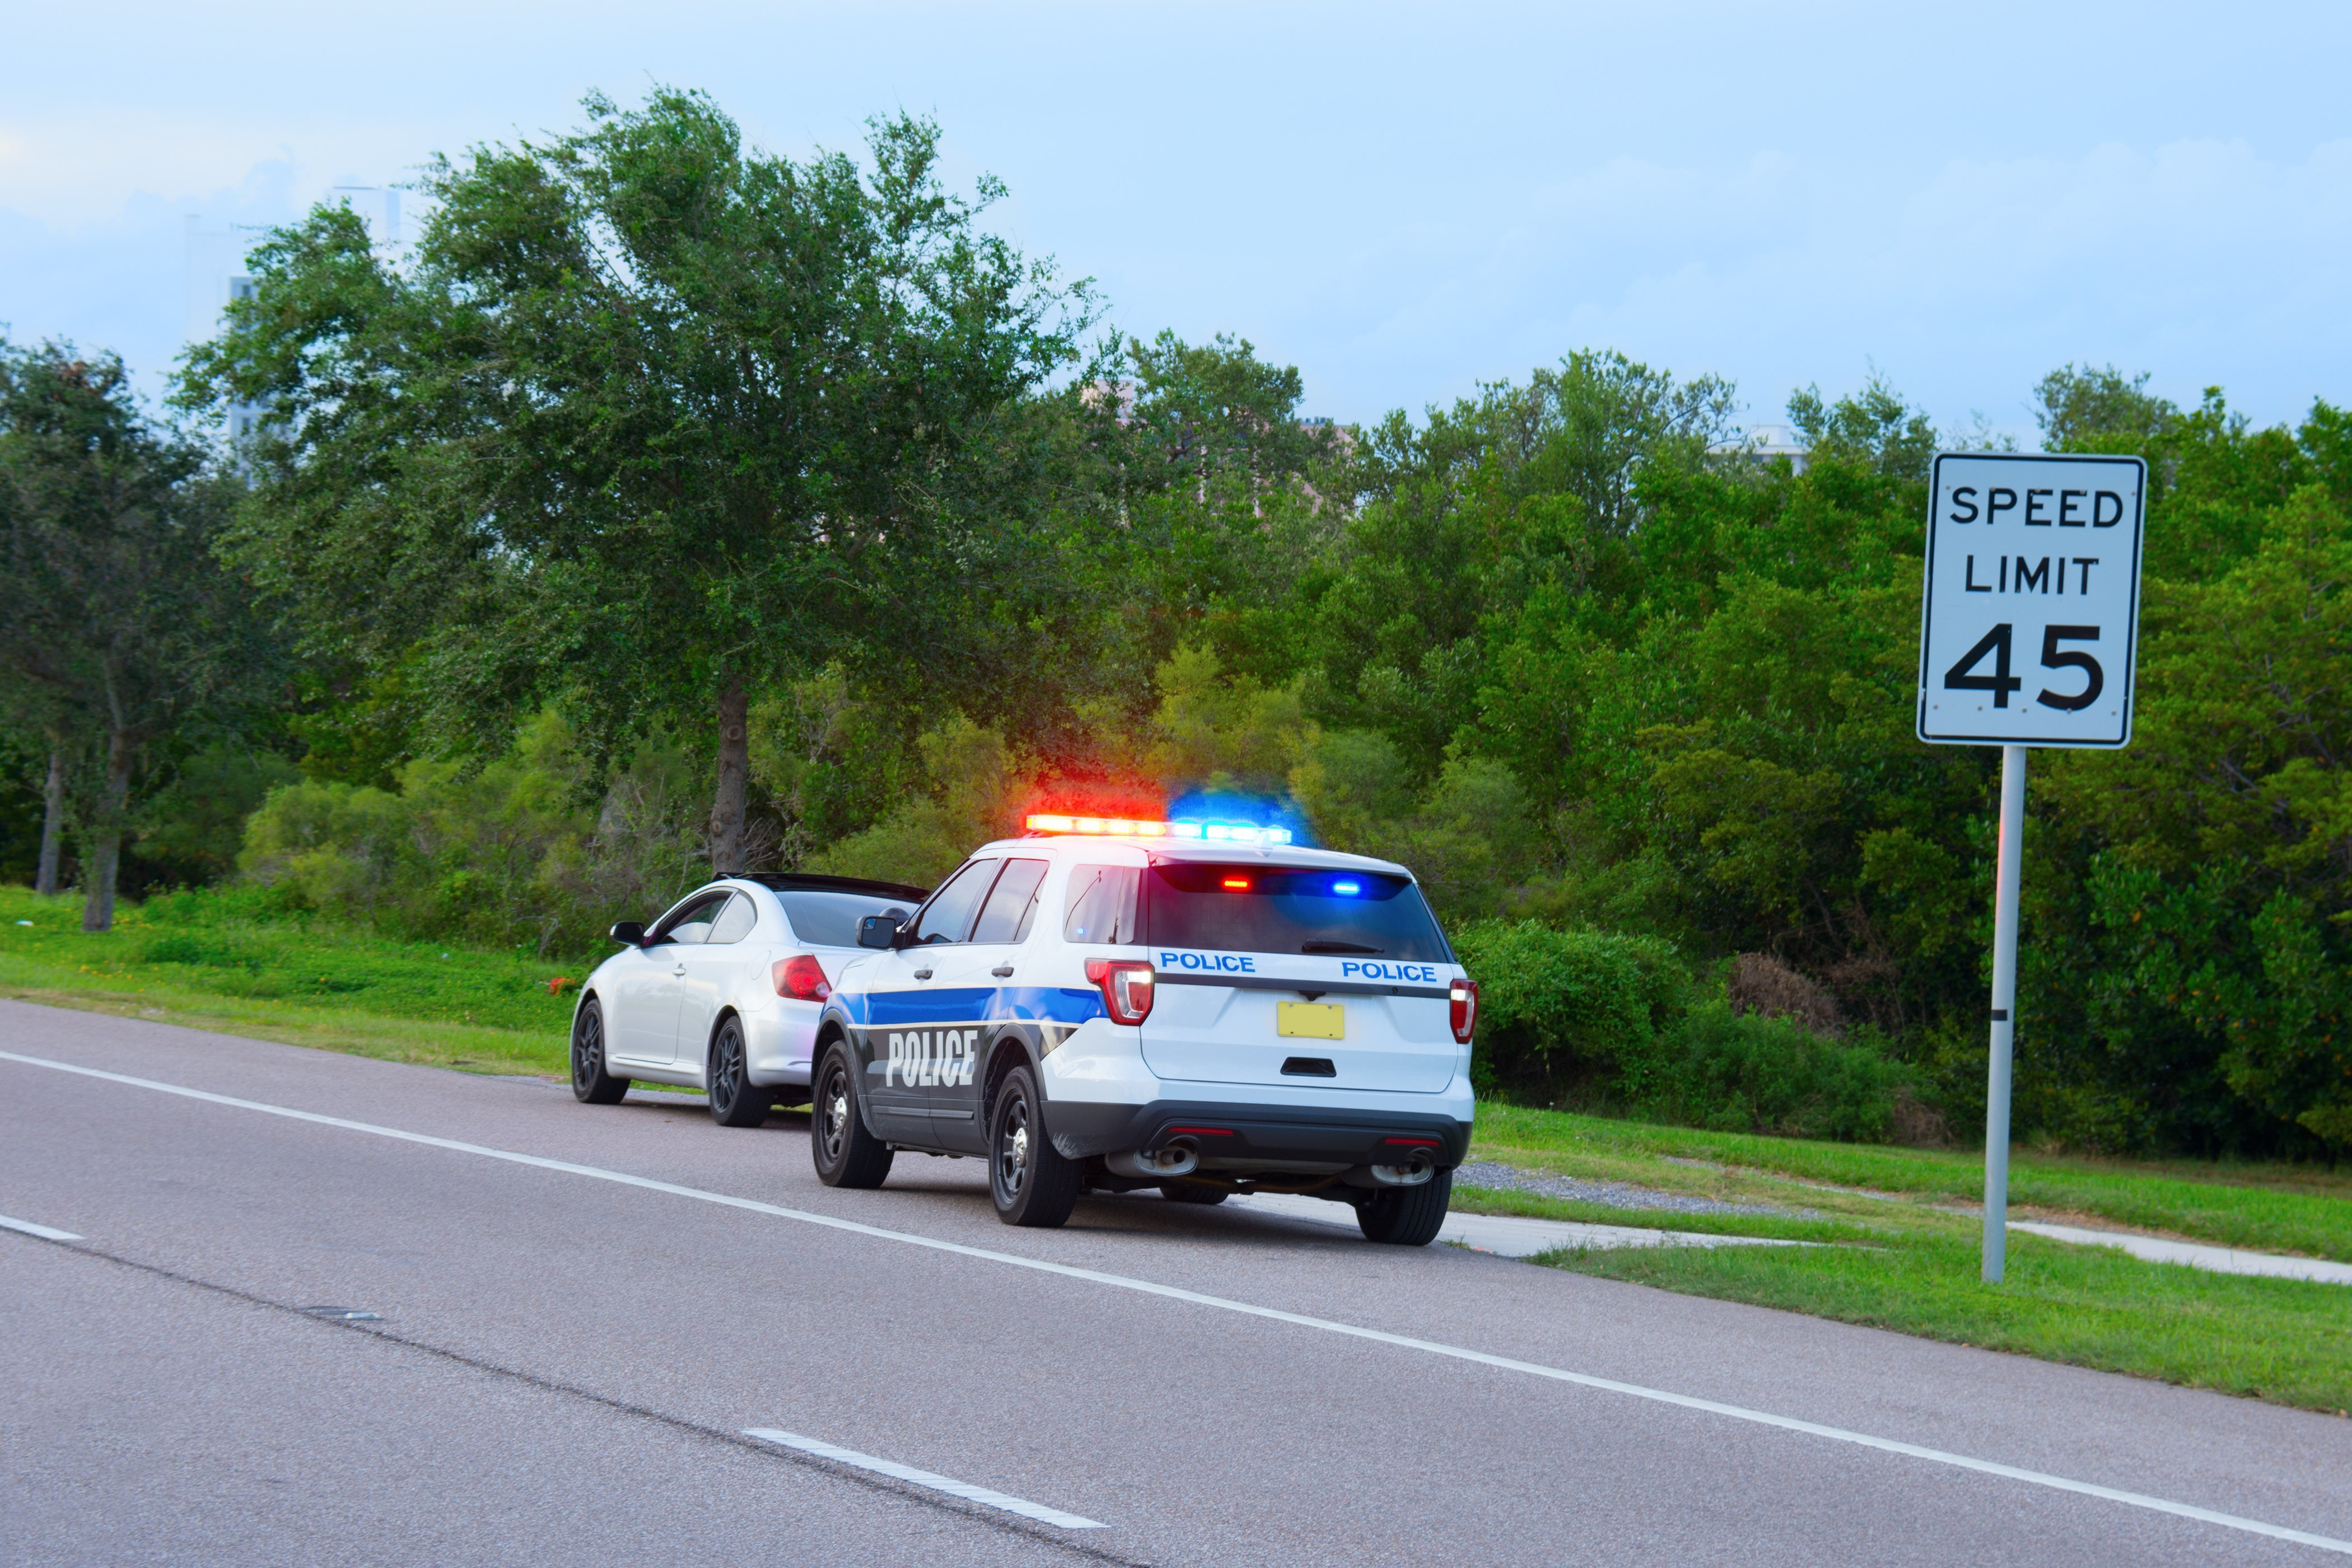 Police car driving along road | Photo: Shutterstock